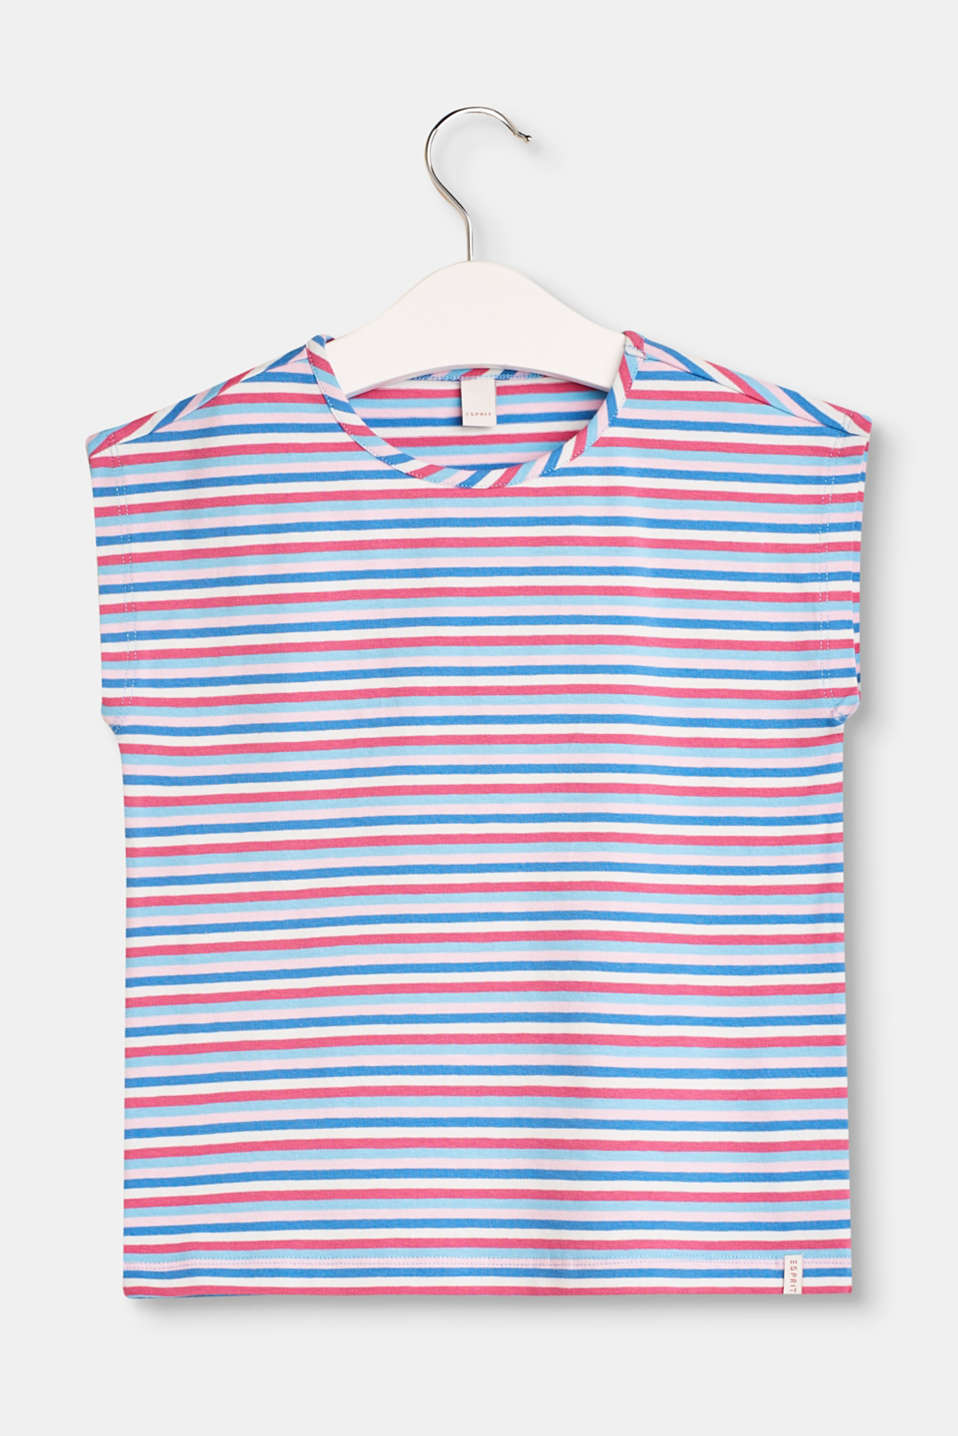 Esprit - Loose, striped T-shirt made of stretch cotton